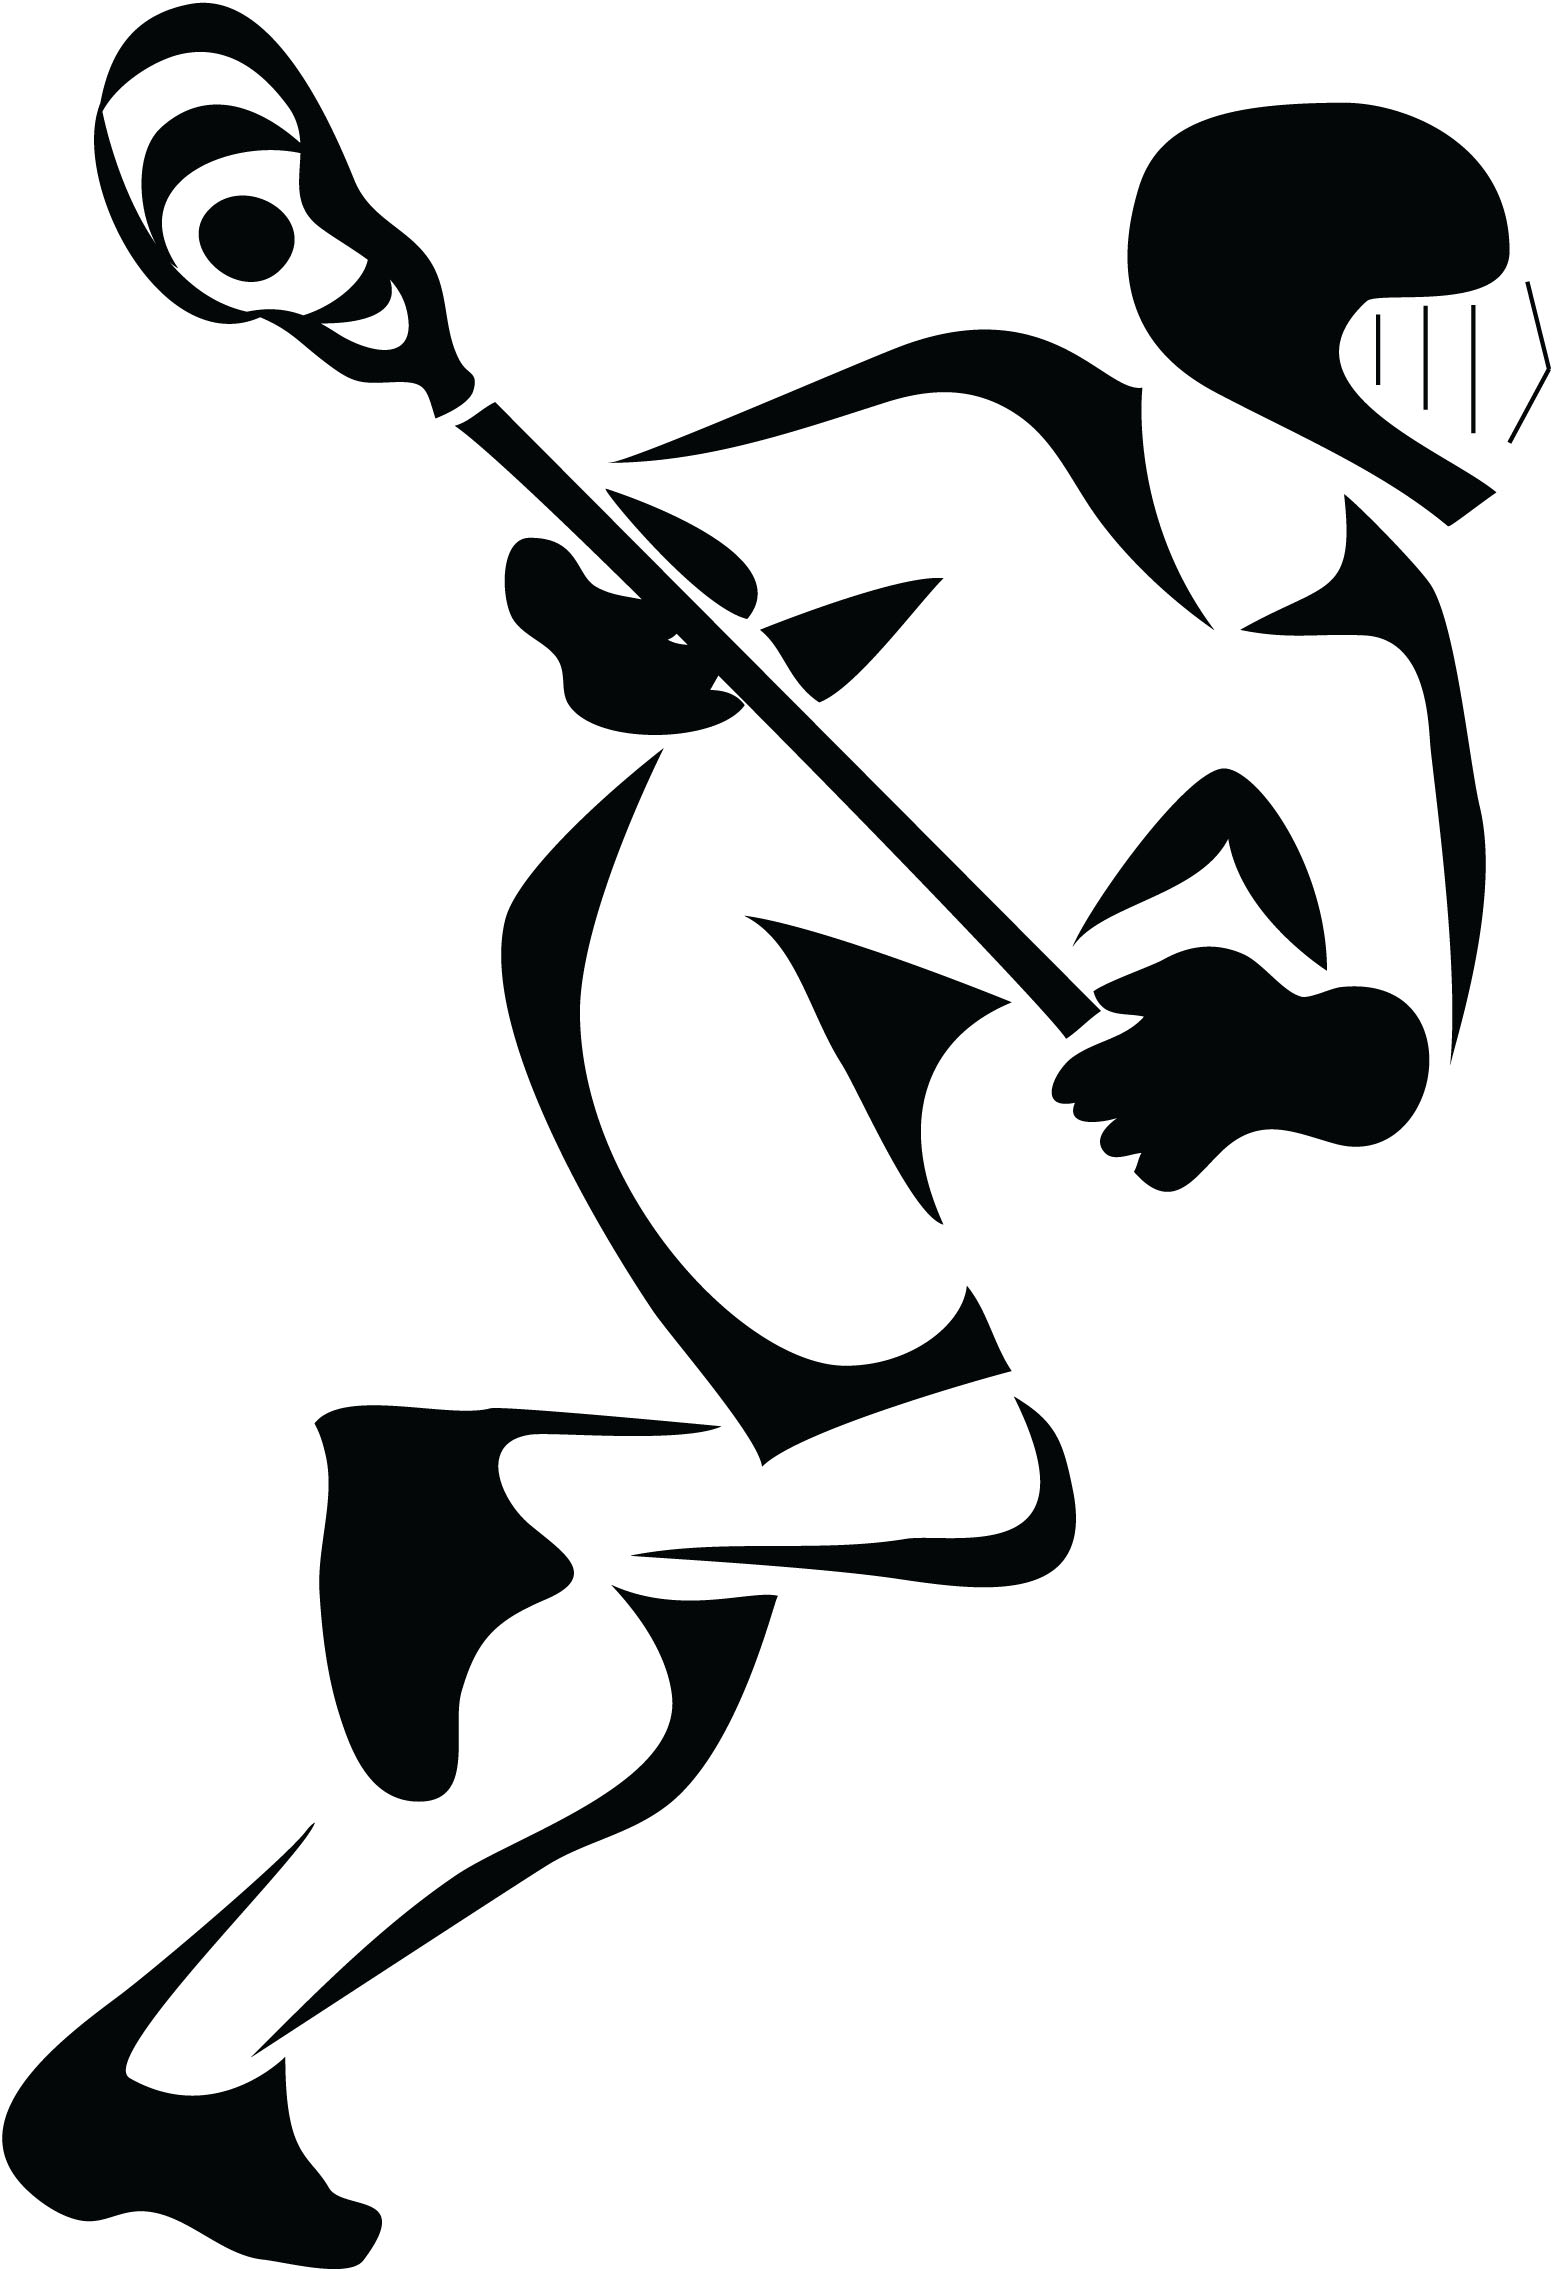 Lacrosse Player2 Cutout